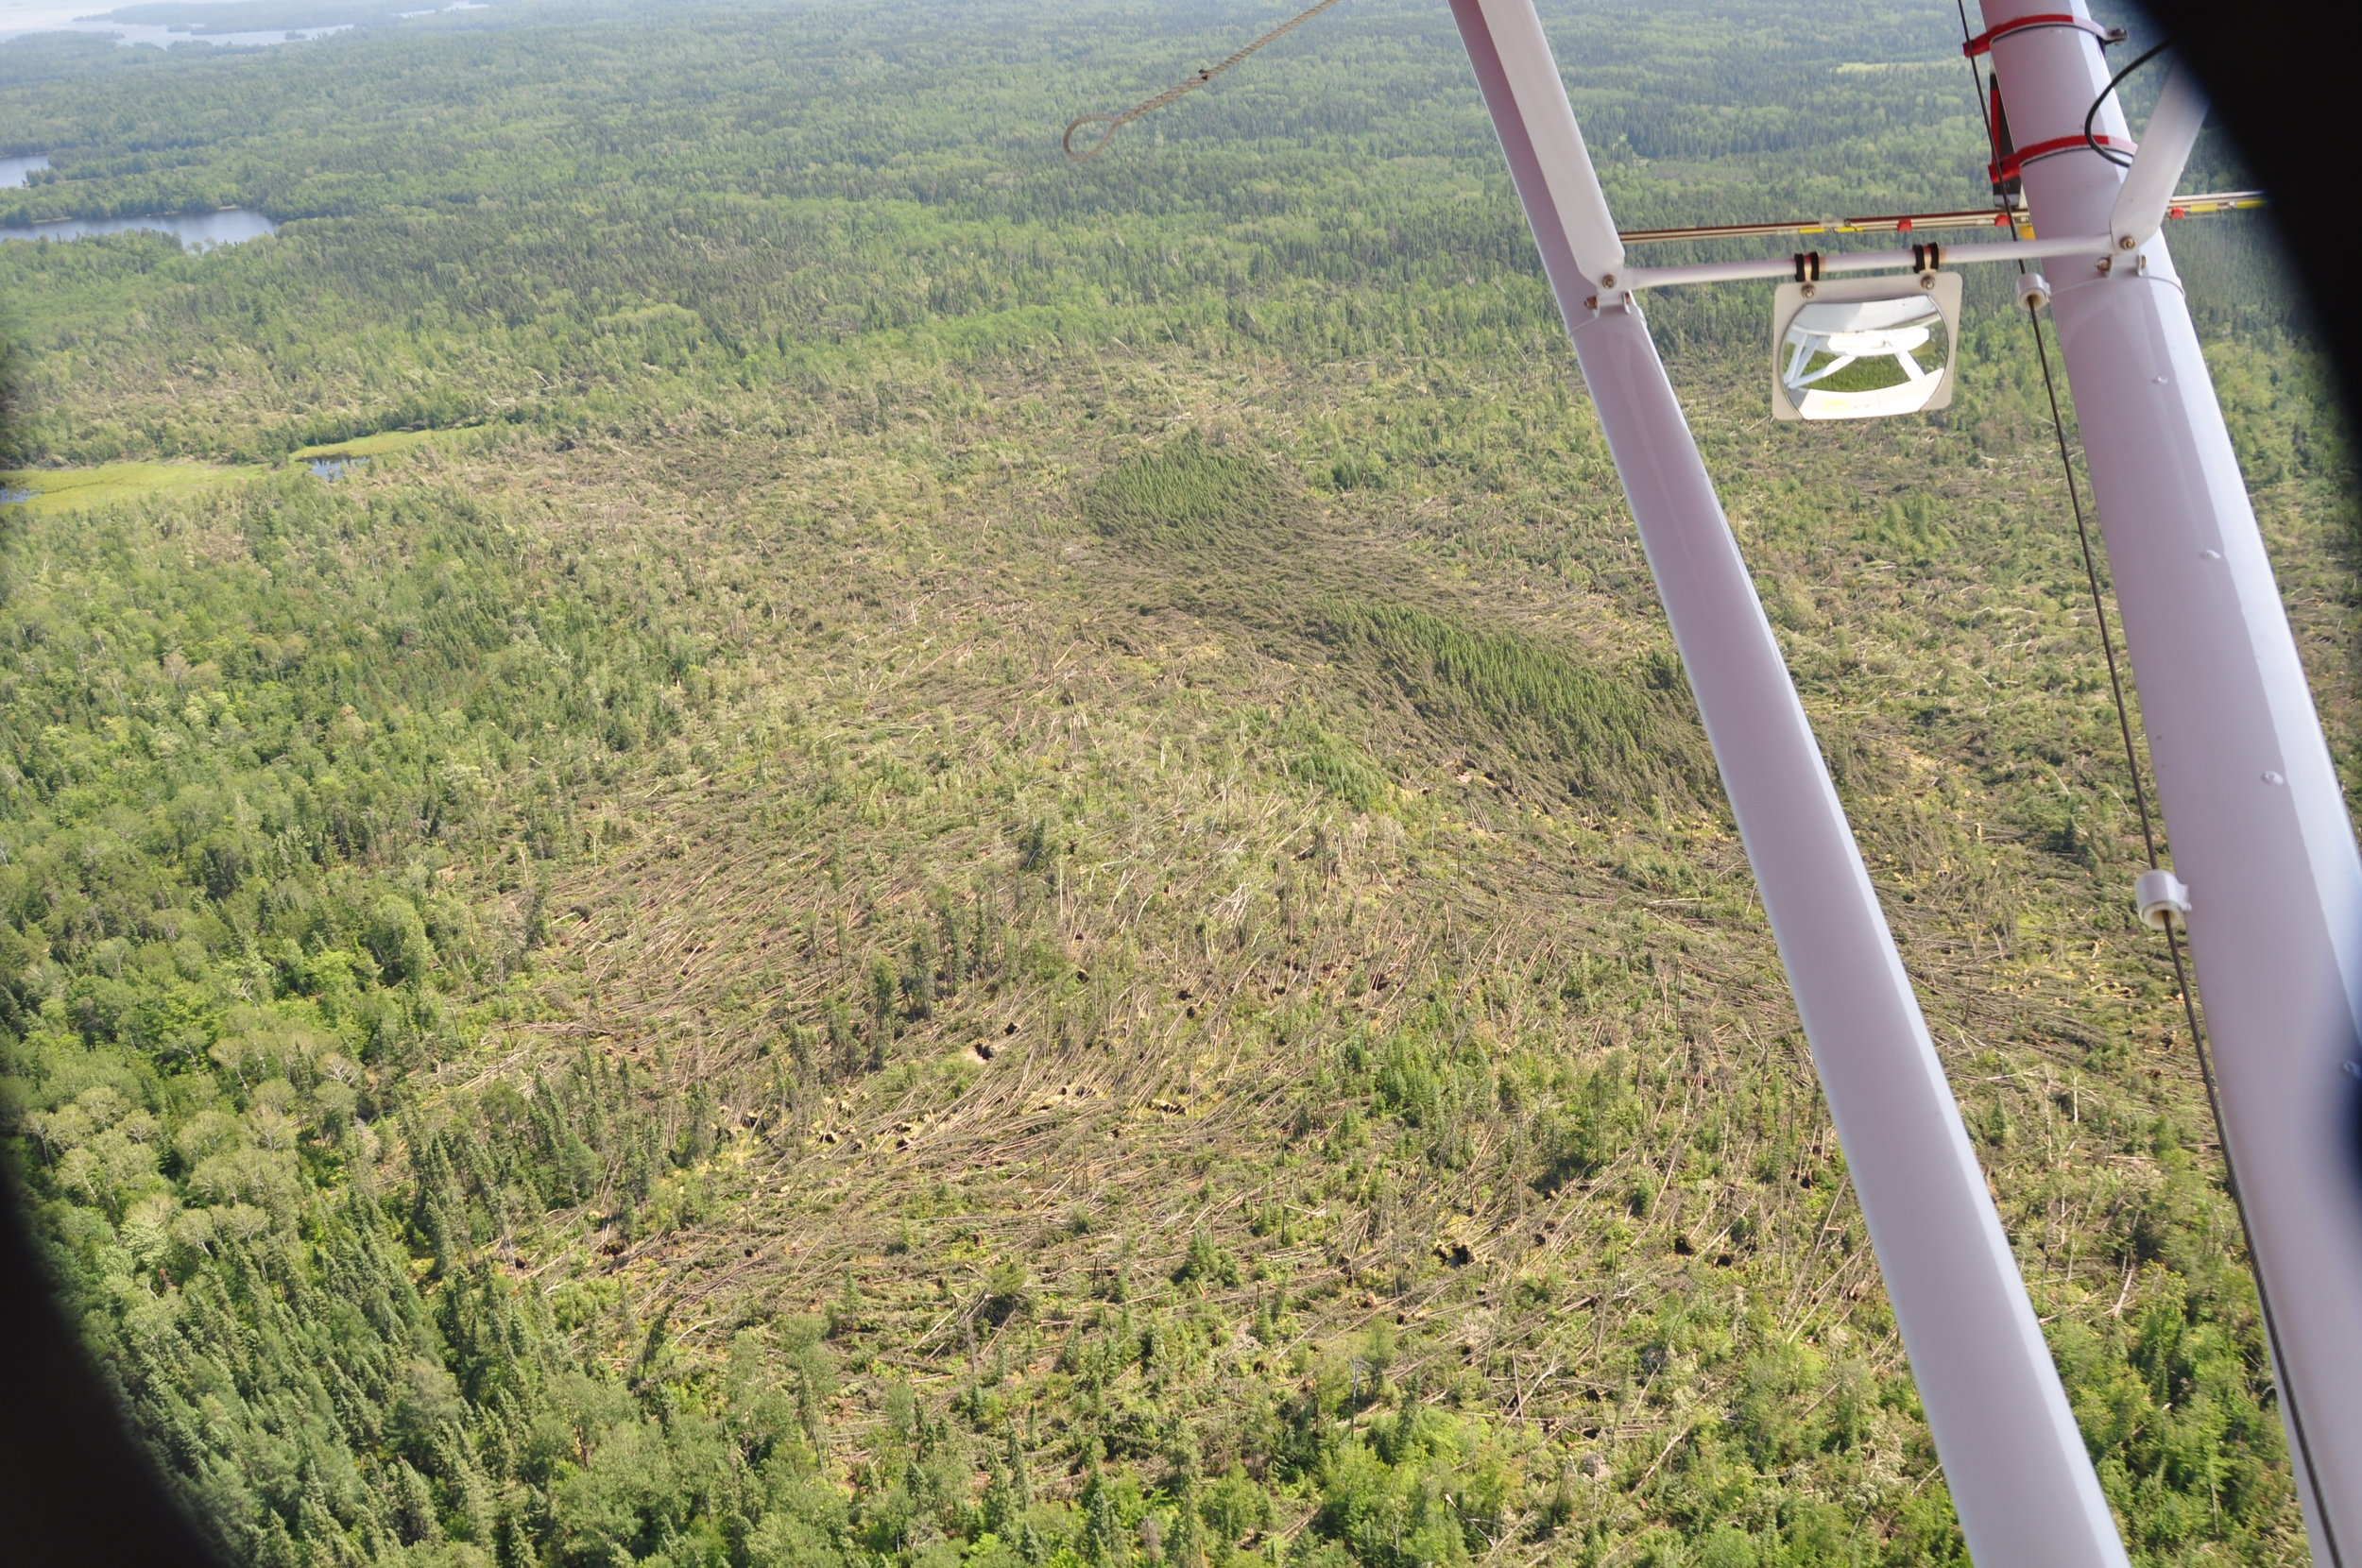 Close-up shot of tornado damage, showing circular pattern of downed trees that is typical in tornado events